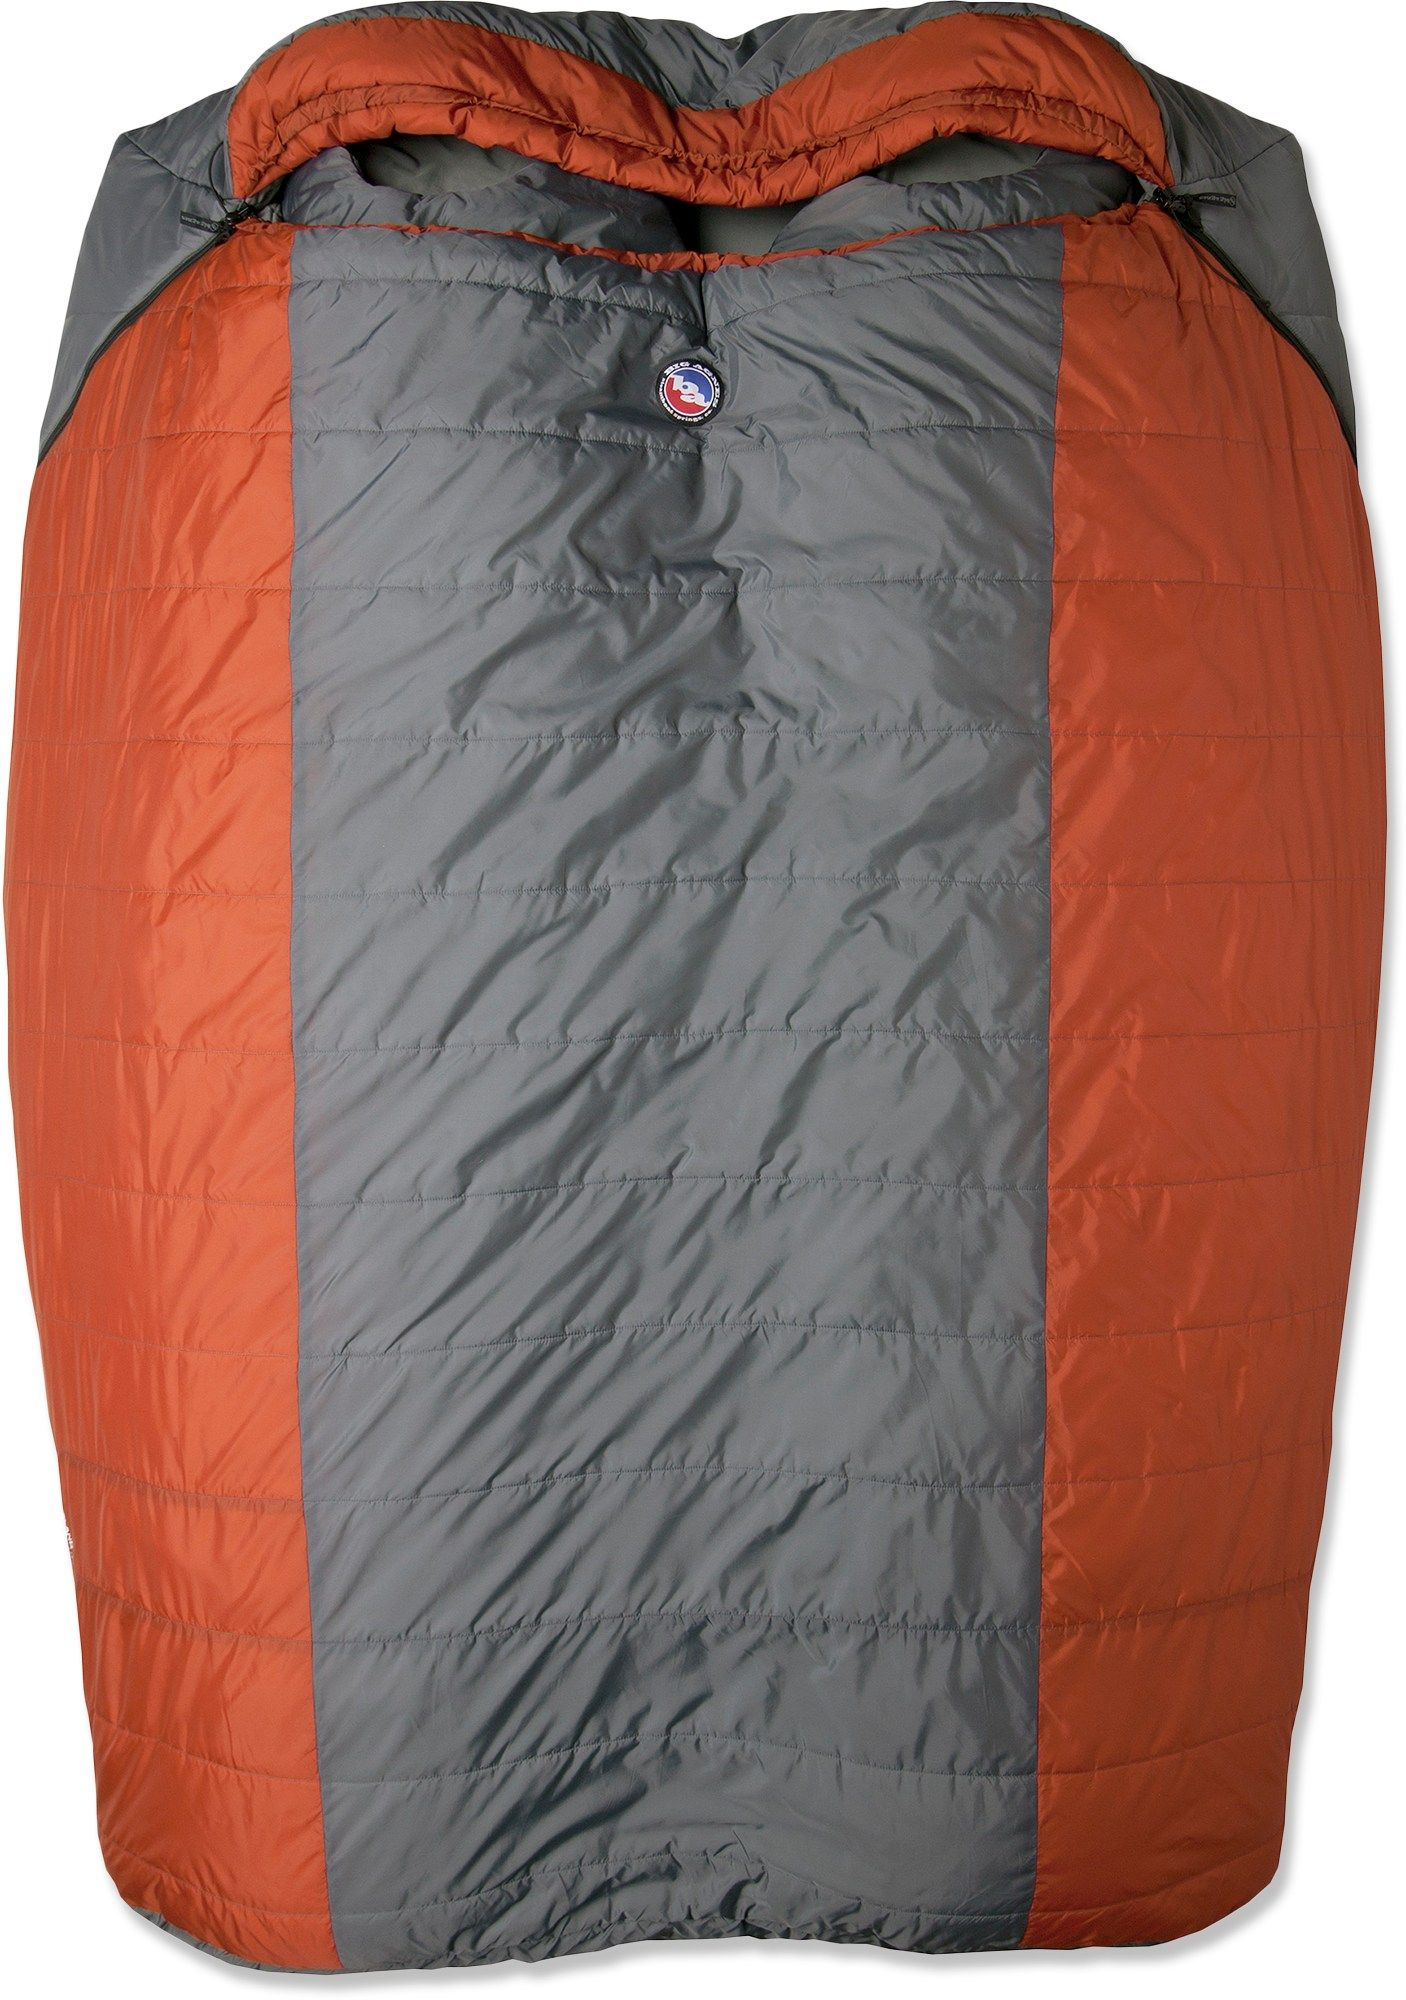 Upgrade To A Two Person Sleeping Bag For Extra Leg Room And Coziness